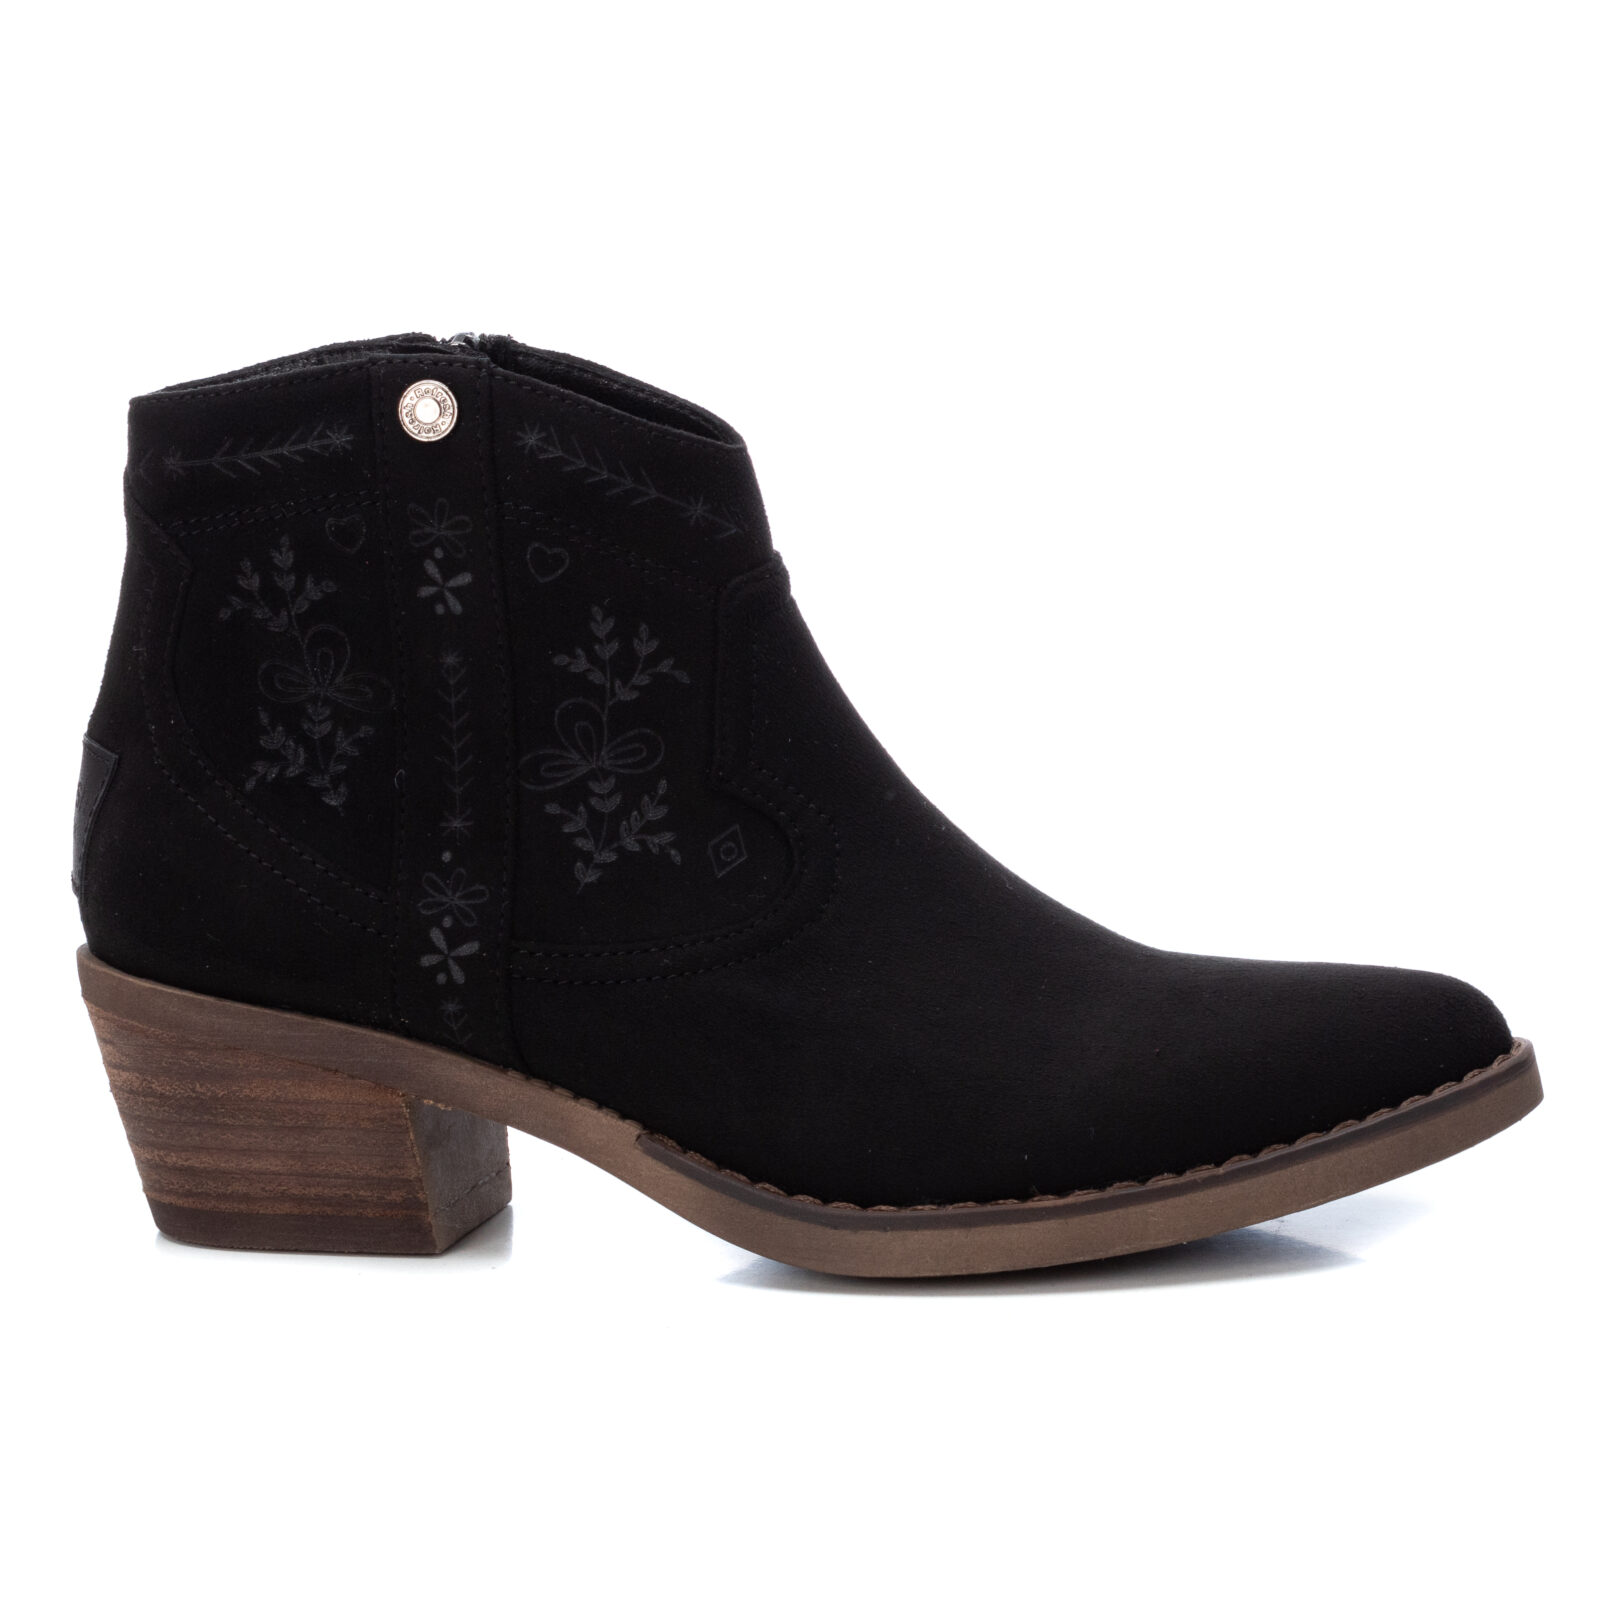 Refresh Ankle Boots in black in a cowboy boot style in a microfibre suede available on colmershill.com